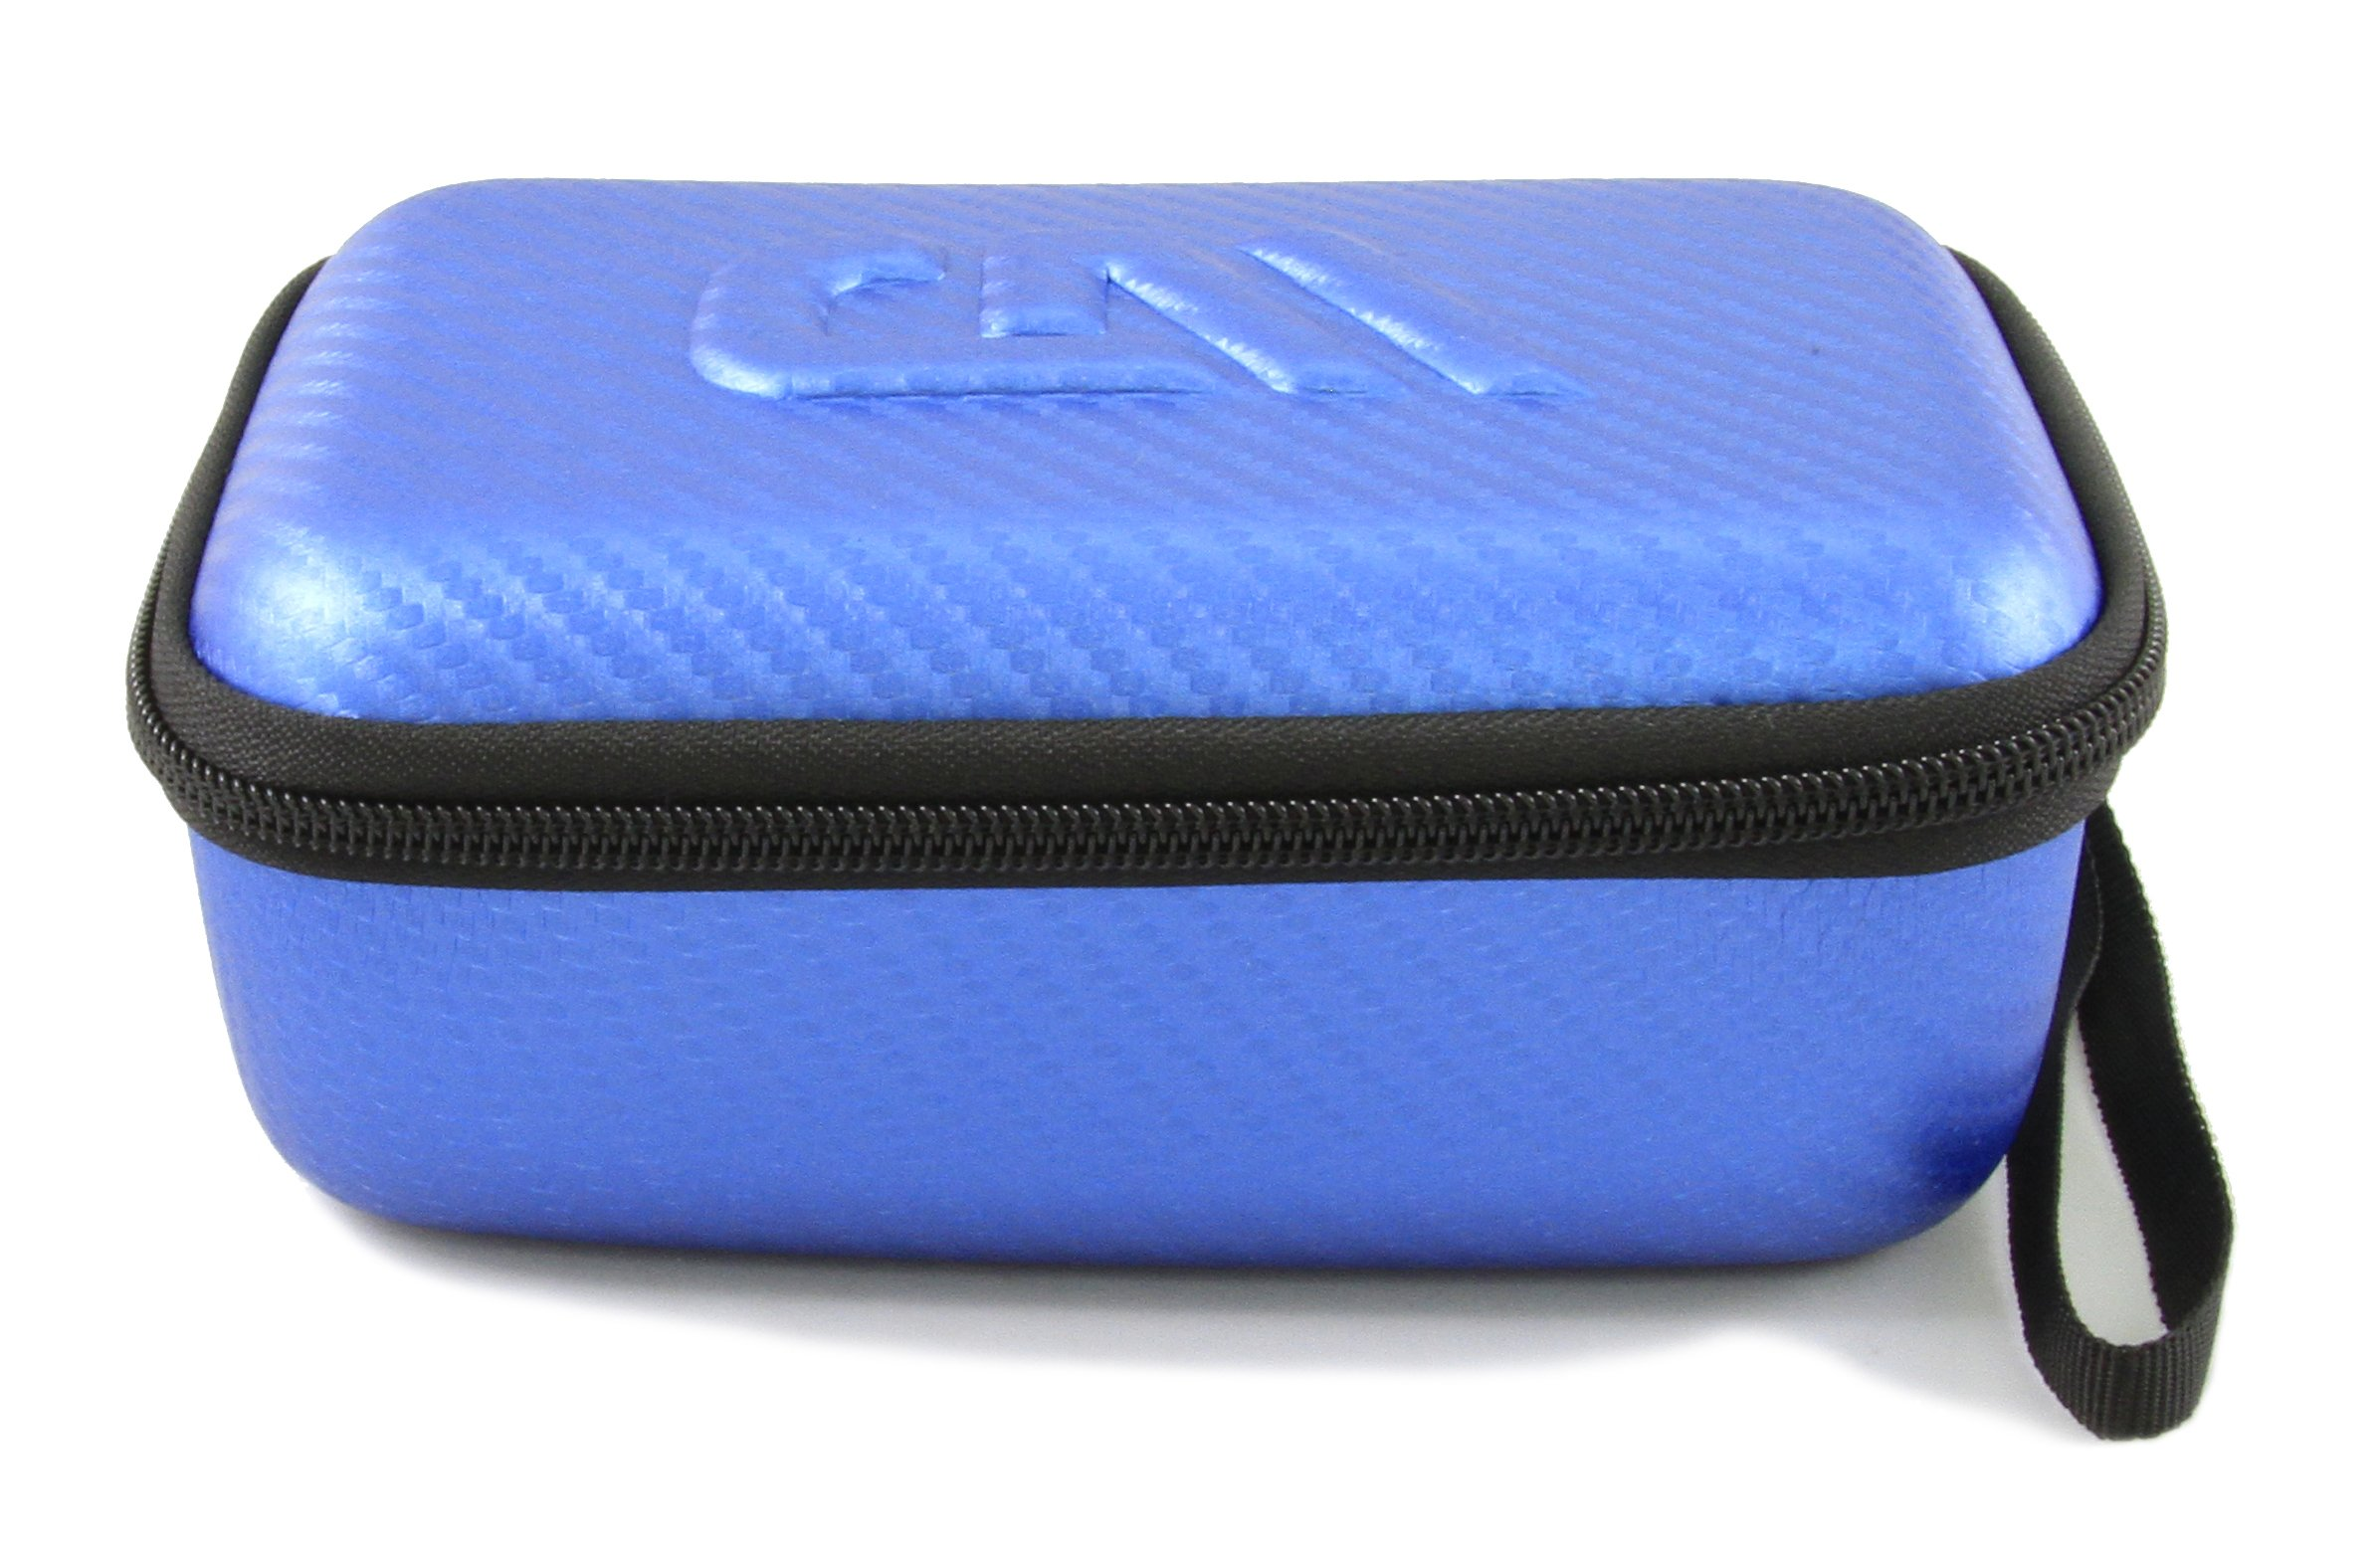 CASEMATIX Blue Toy Case Compatible with Boxer Interactive A.I. Robot - Includes Toy Box and Felt Bag to Hold Game Activating Feature Cards by CASEMATIX (Image #8)